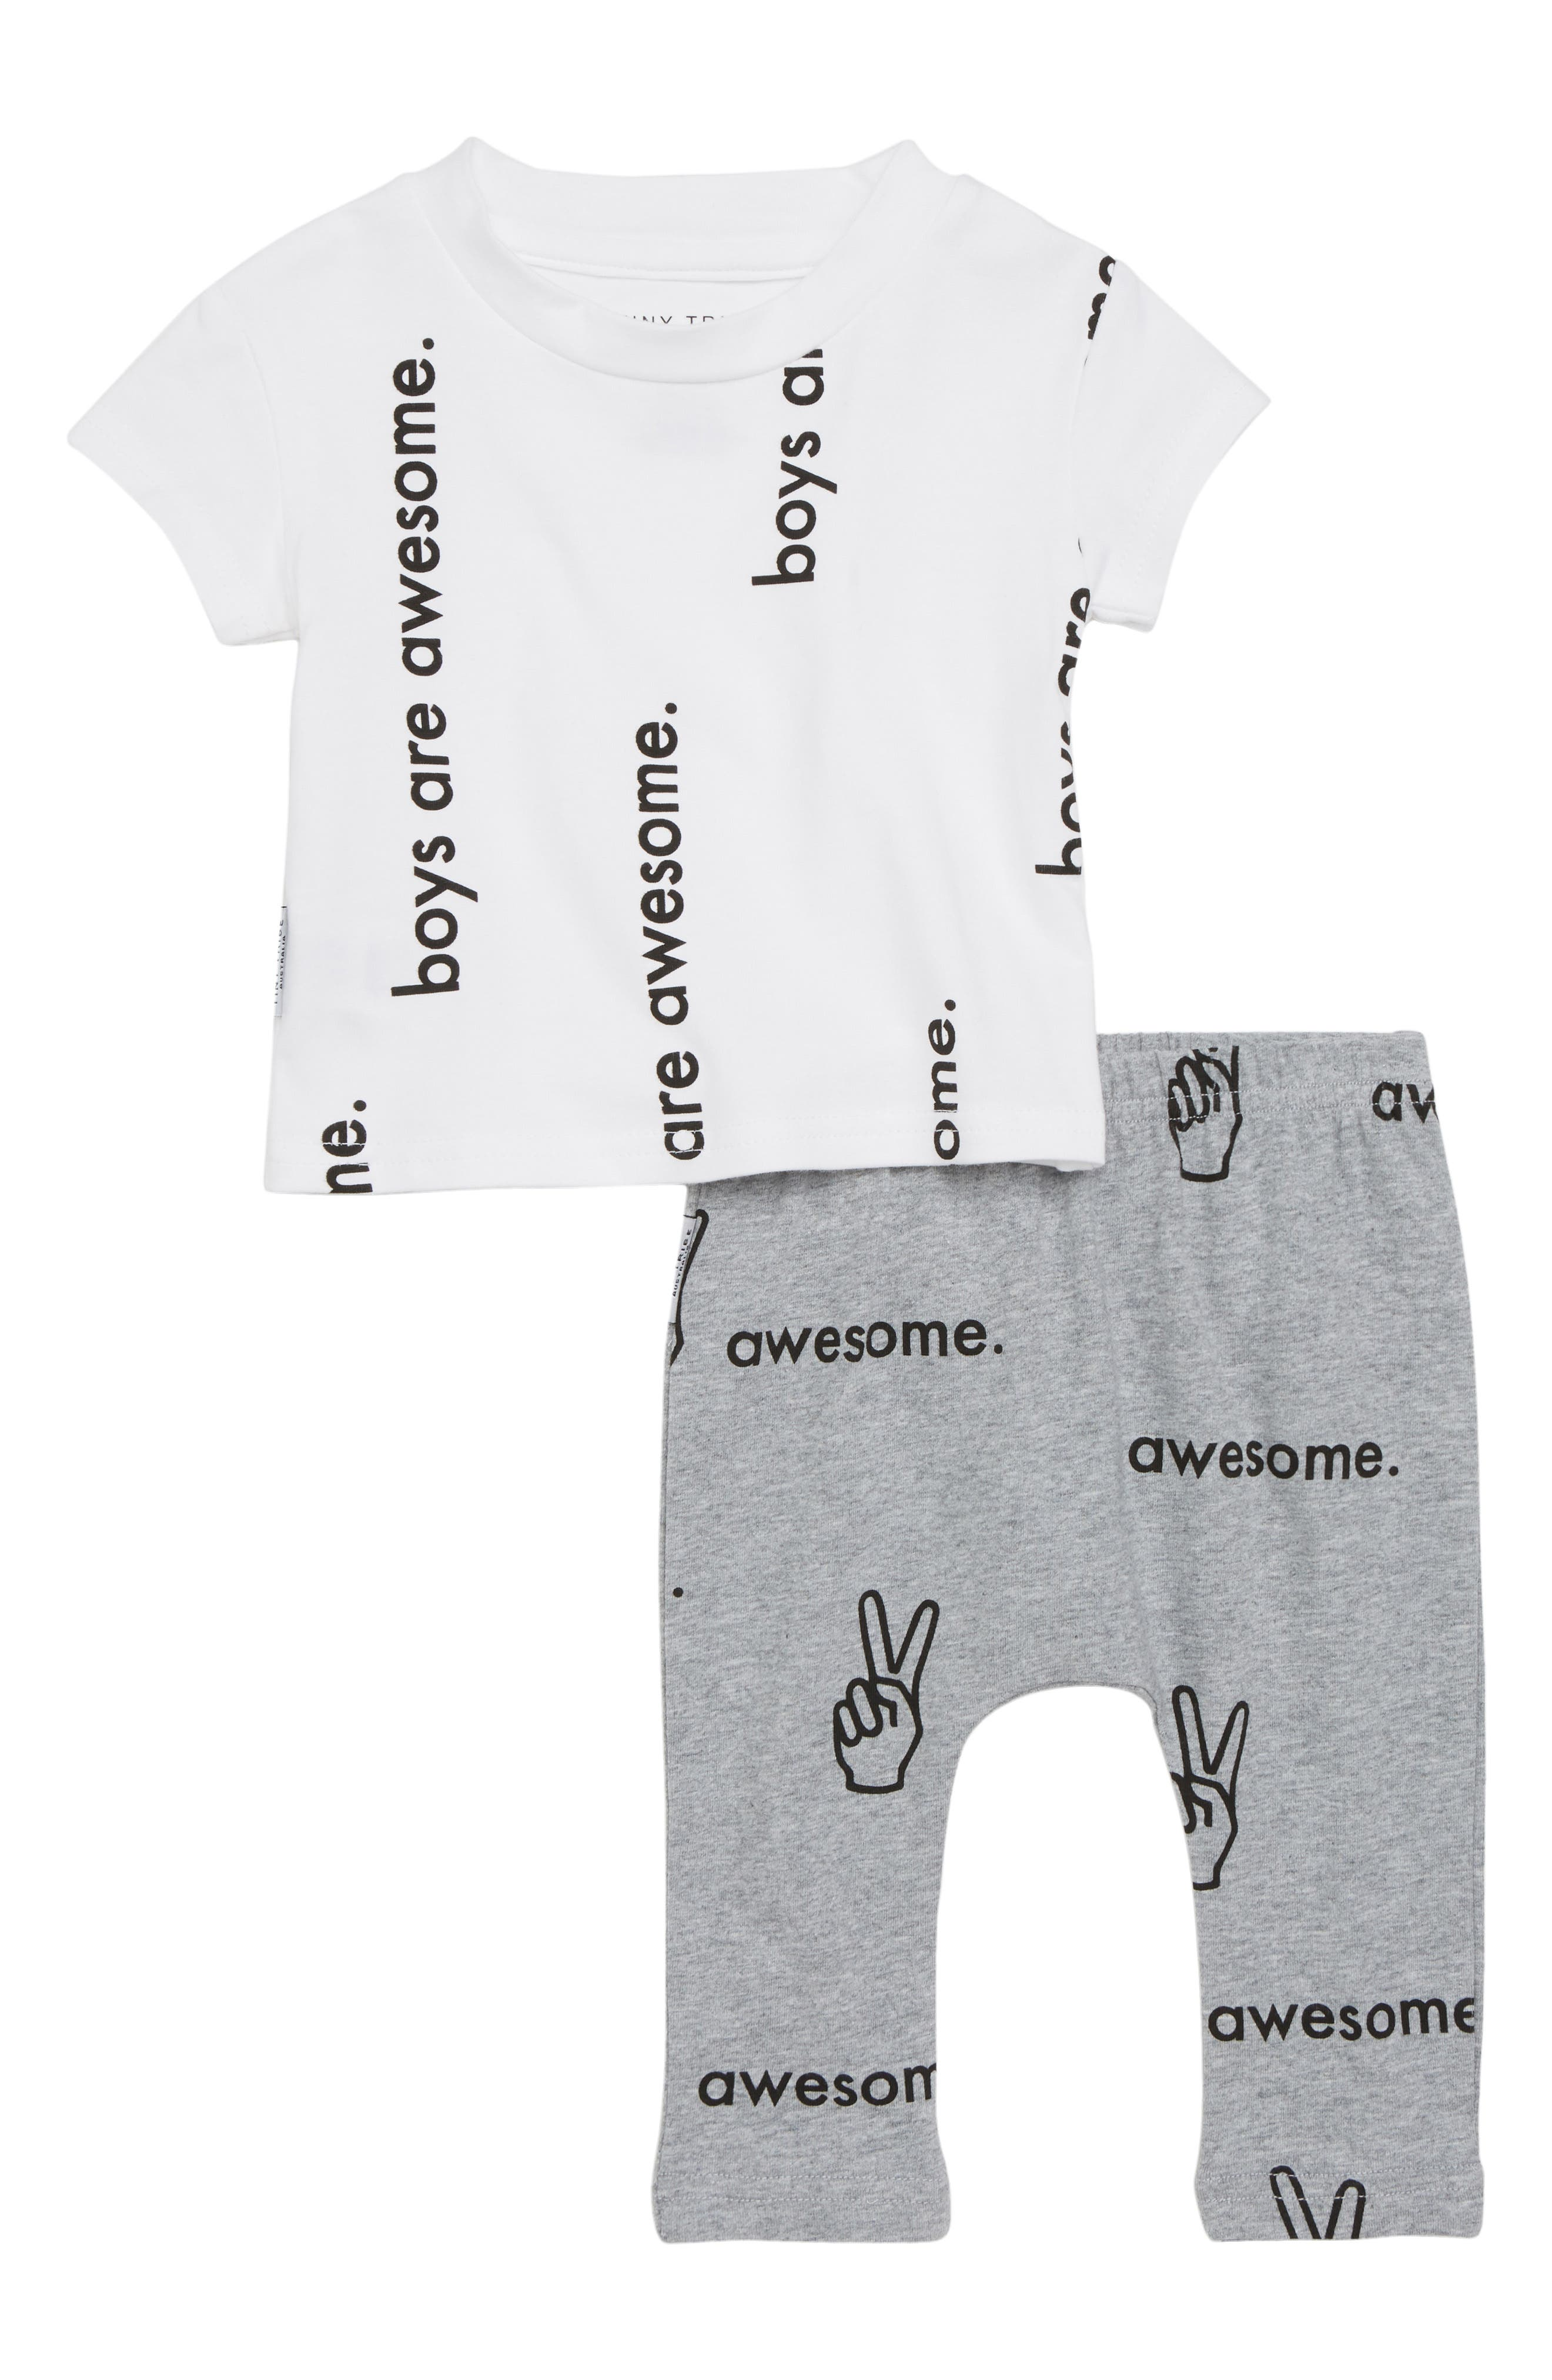 Boys are Awesome Graphic T-Shirt & Pants Set,                             Main thumbnail 1, color,                             109